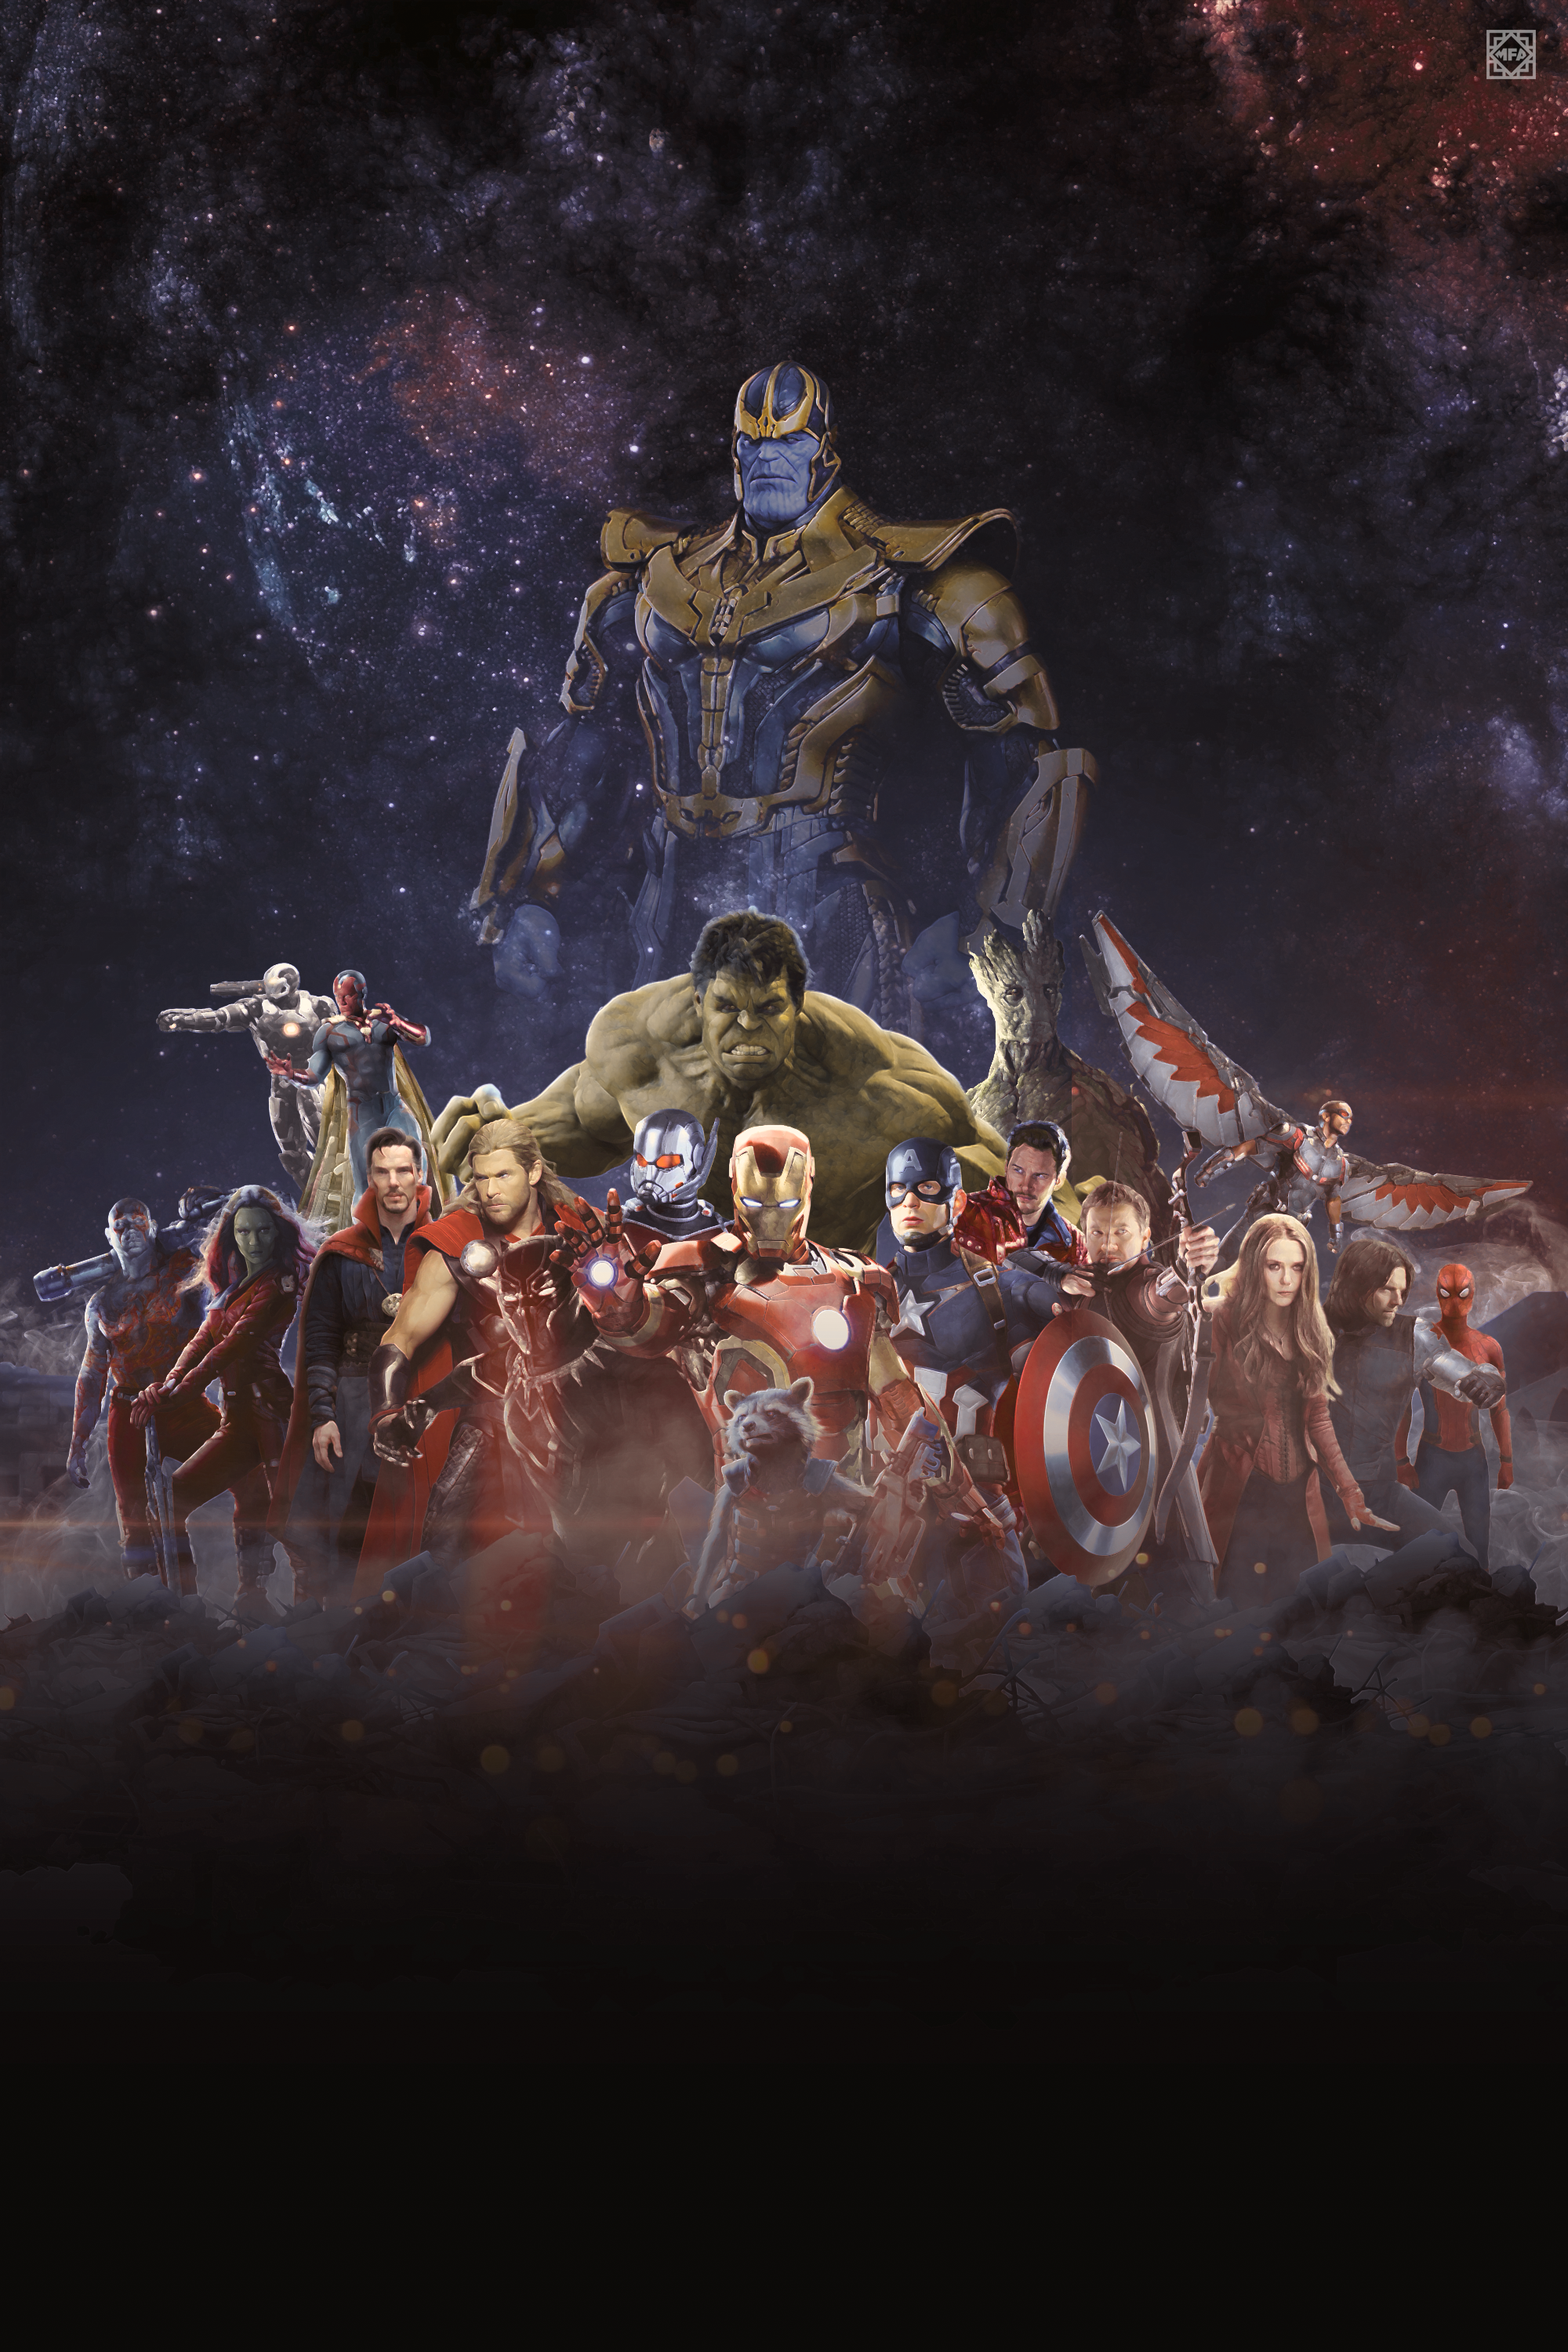 The Avengers: Infinity War Wallpaper by